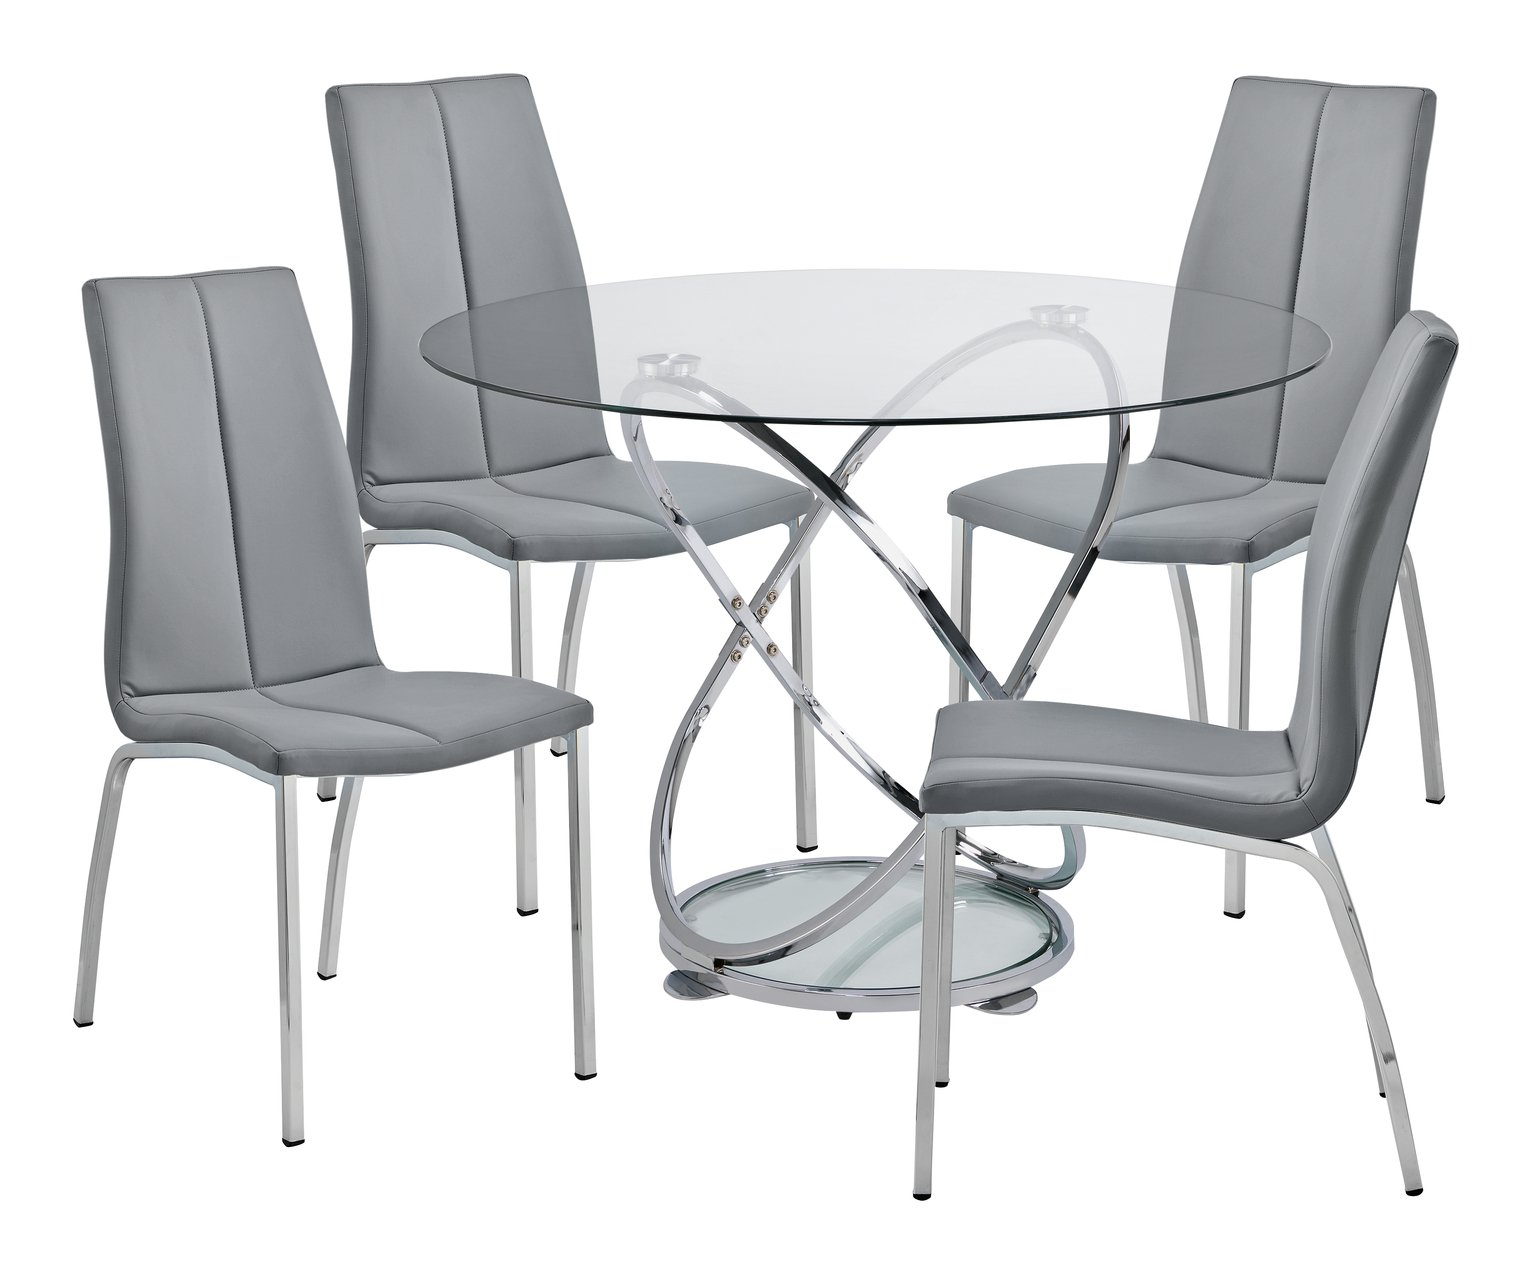 Charmant Buy Argos Home Atom Glass Dining Table U0026 4 Grey Milo Chairs | Dining Table  And Chair Sets | Argos